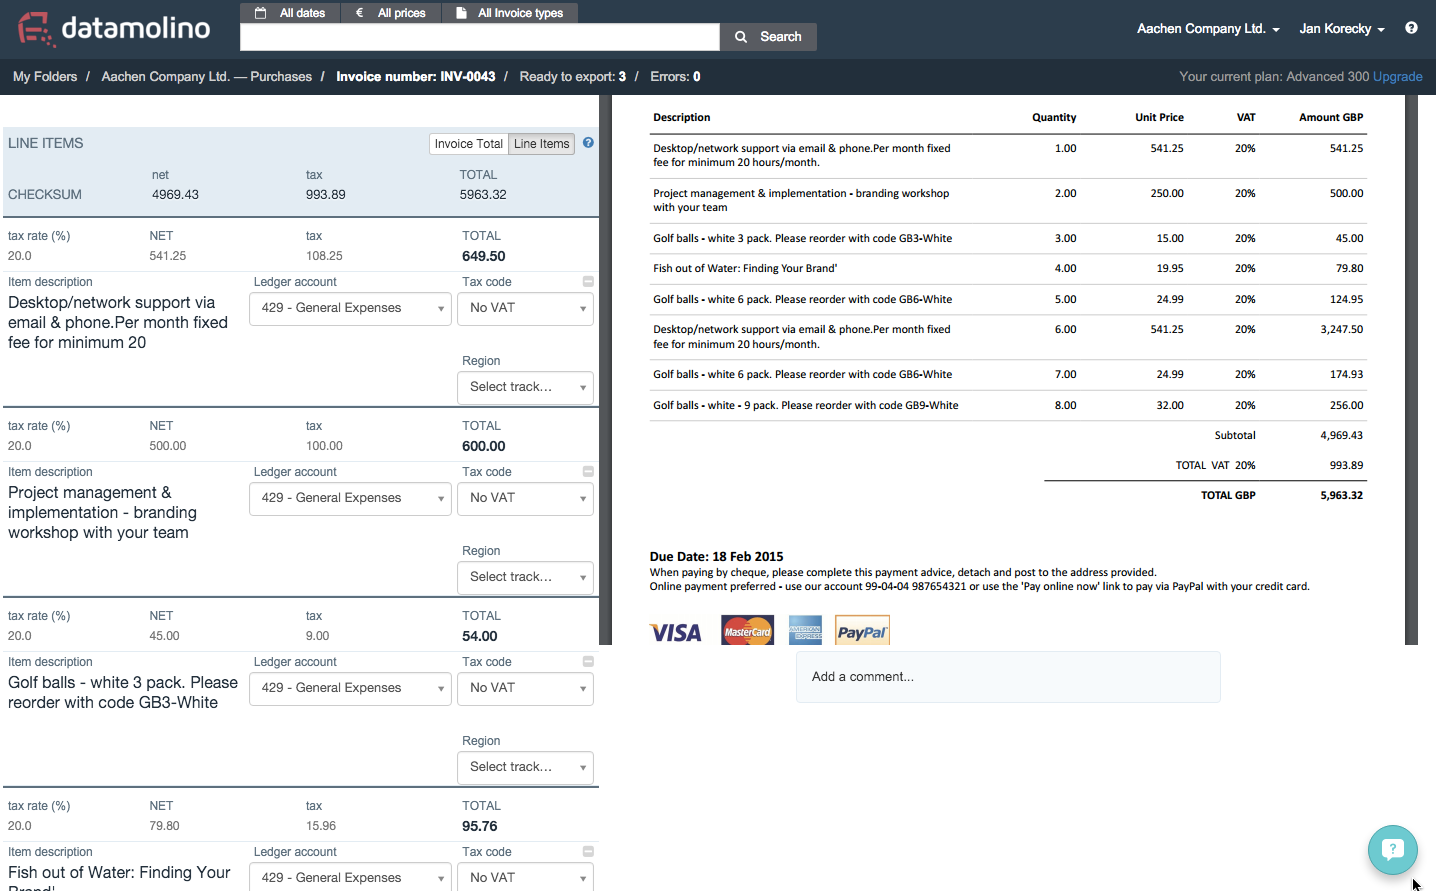 Datamolino captures line items on your invoices for easier bookkeeping